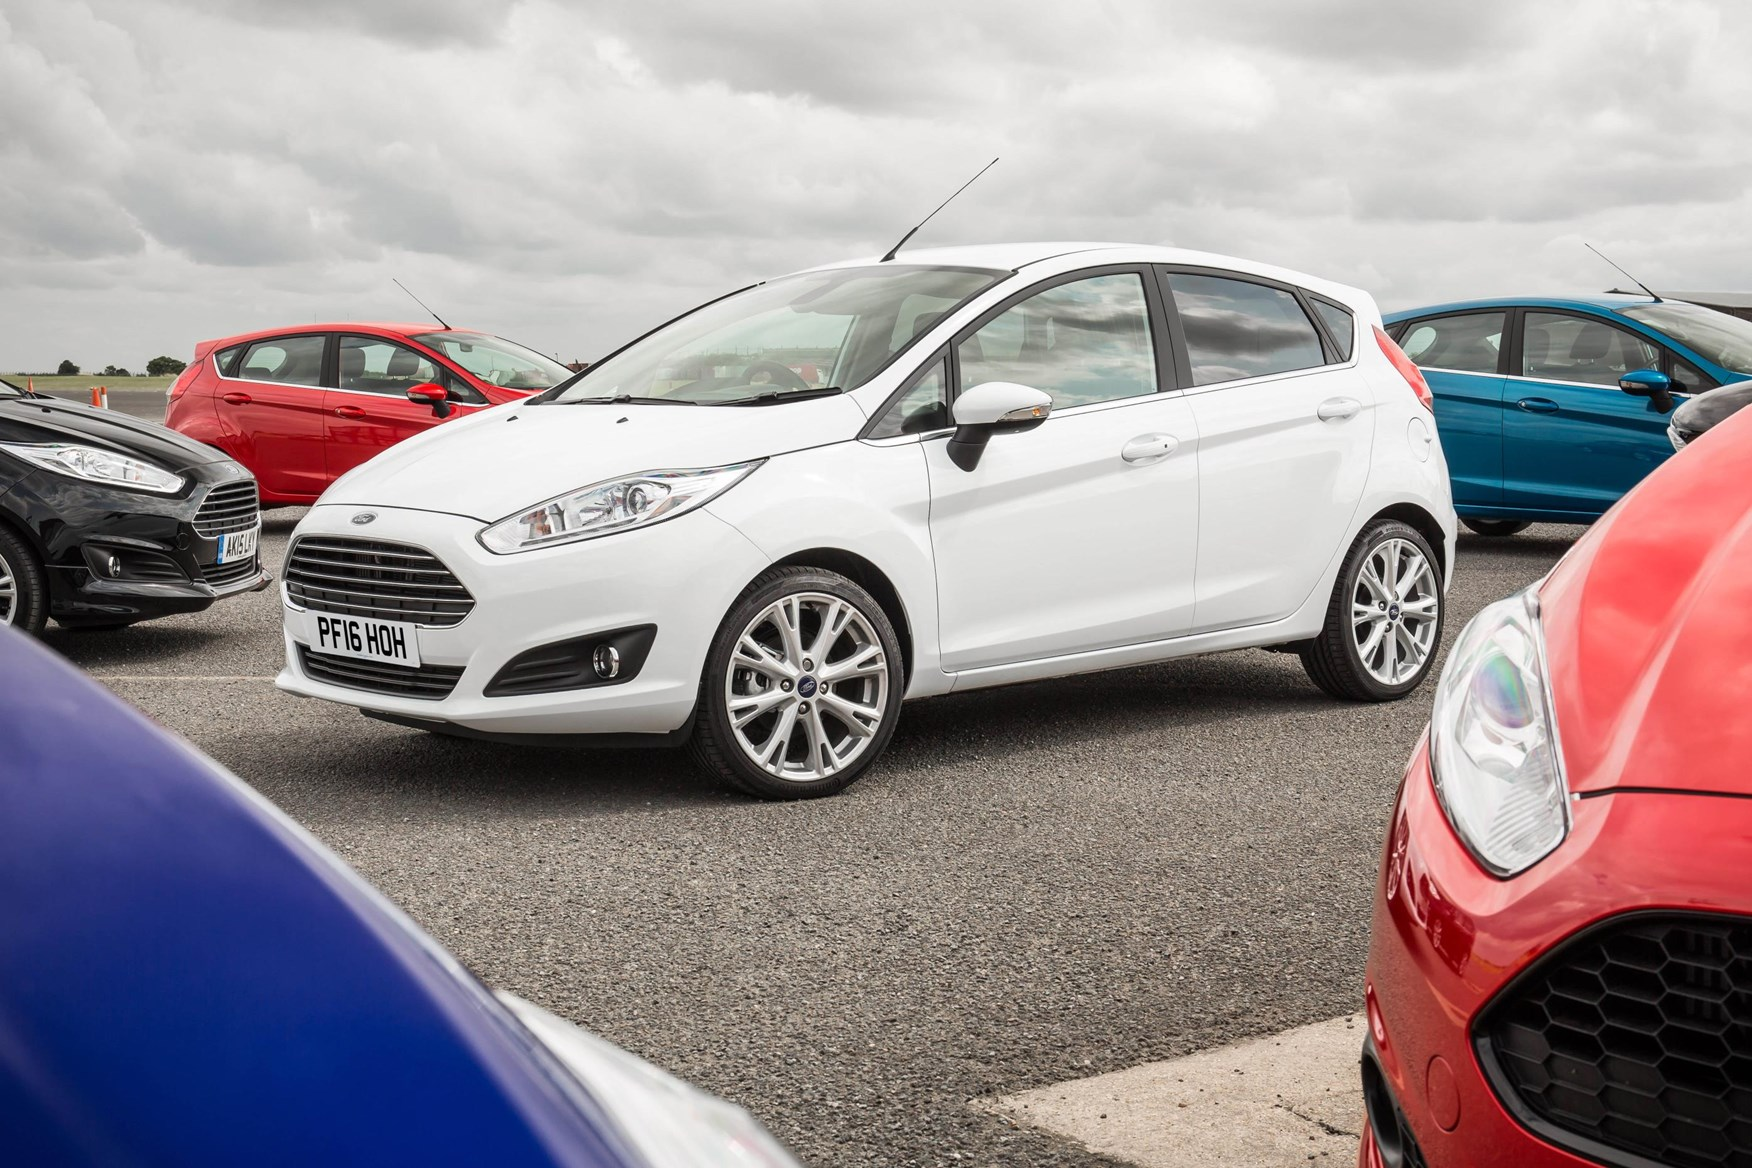 Car finance: how to make sure you get the best deal